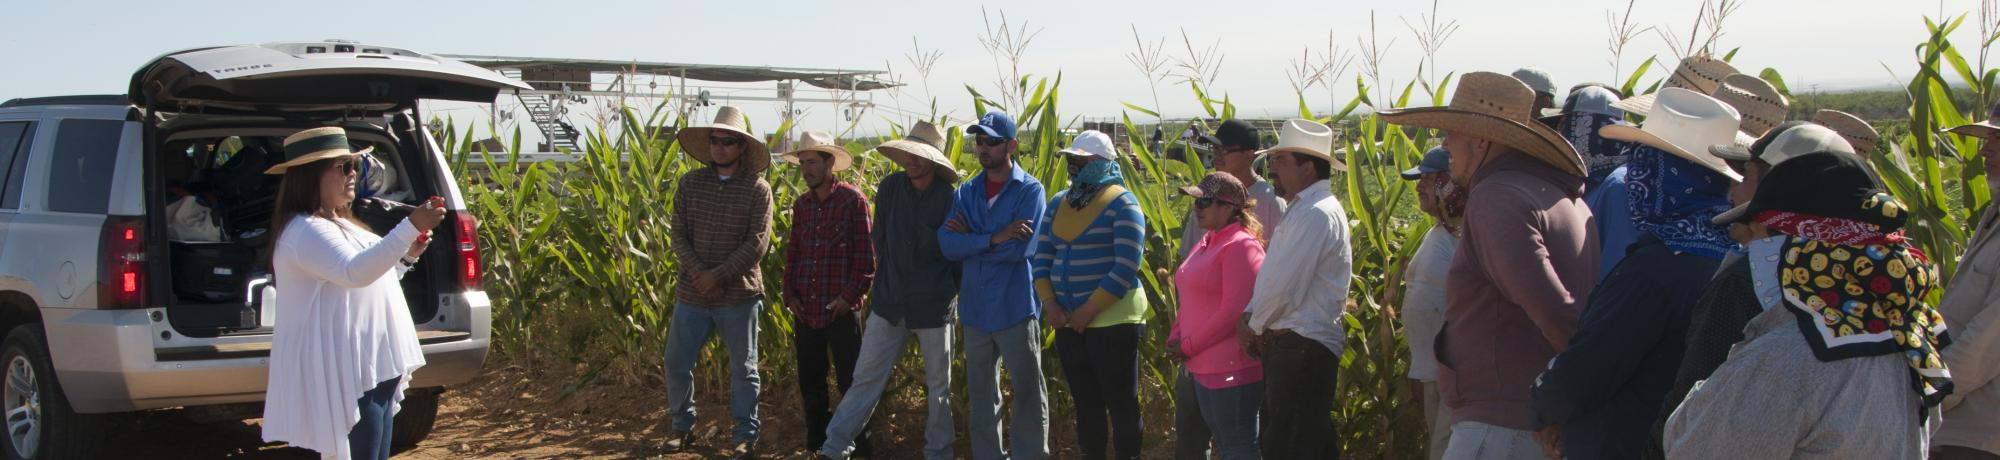 Farmworkers listening to Outreach Specialist Teresa Andrews explain signs and symptoms of heat illness